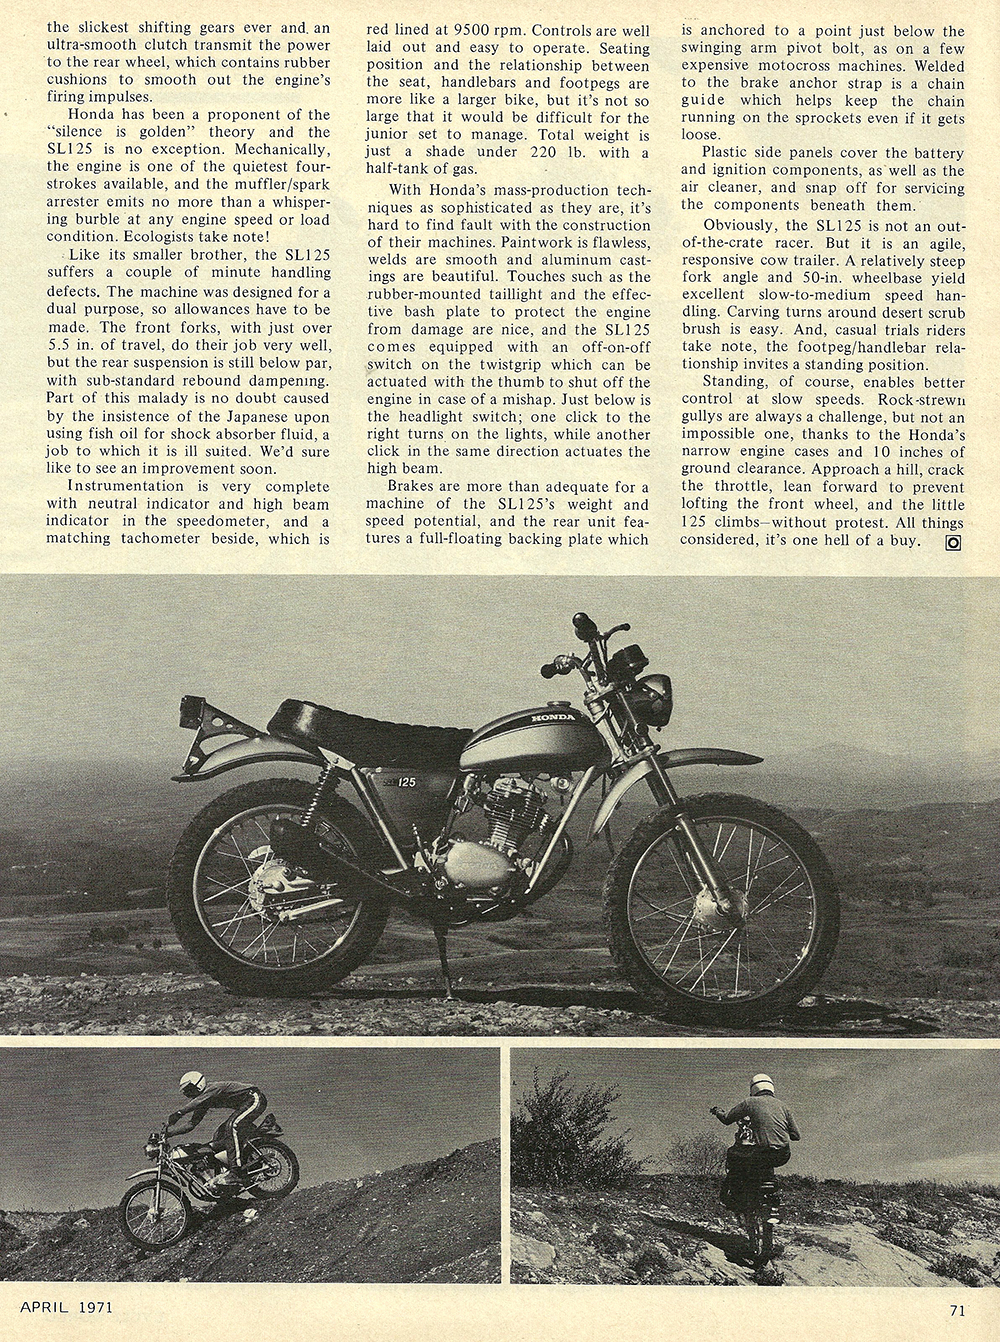 1971 Honda SL125 short test 02.jpg